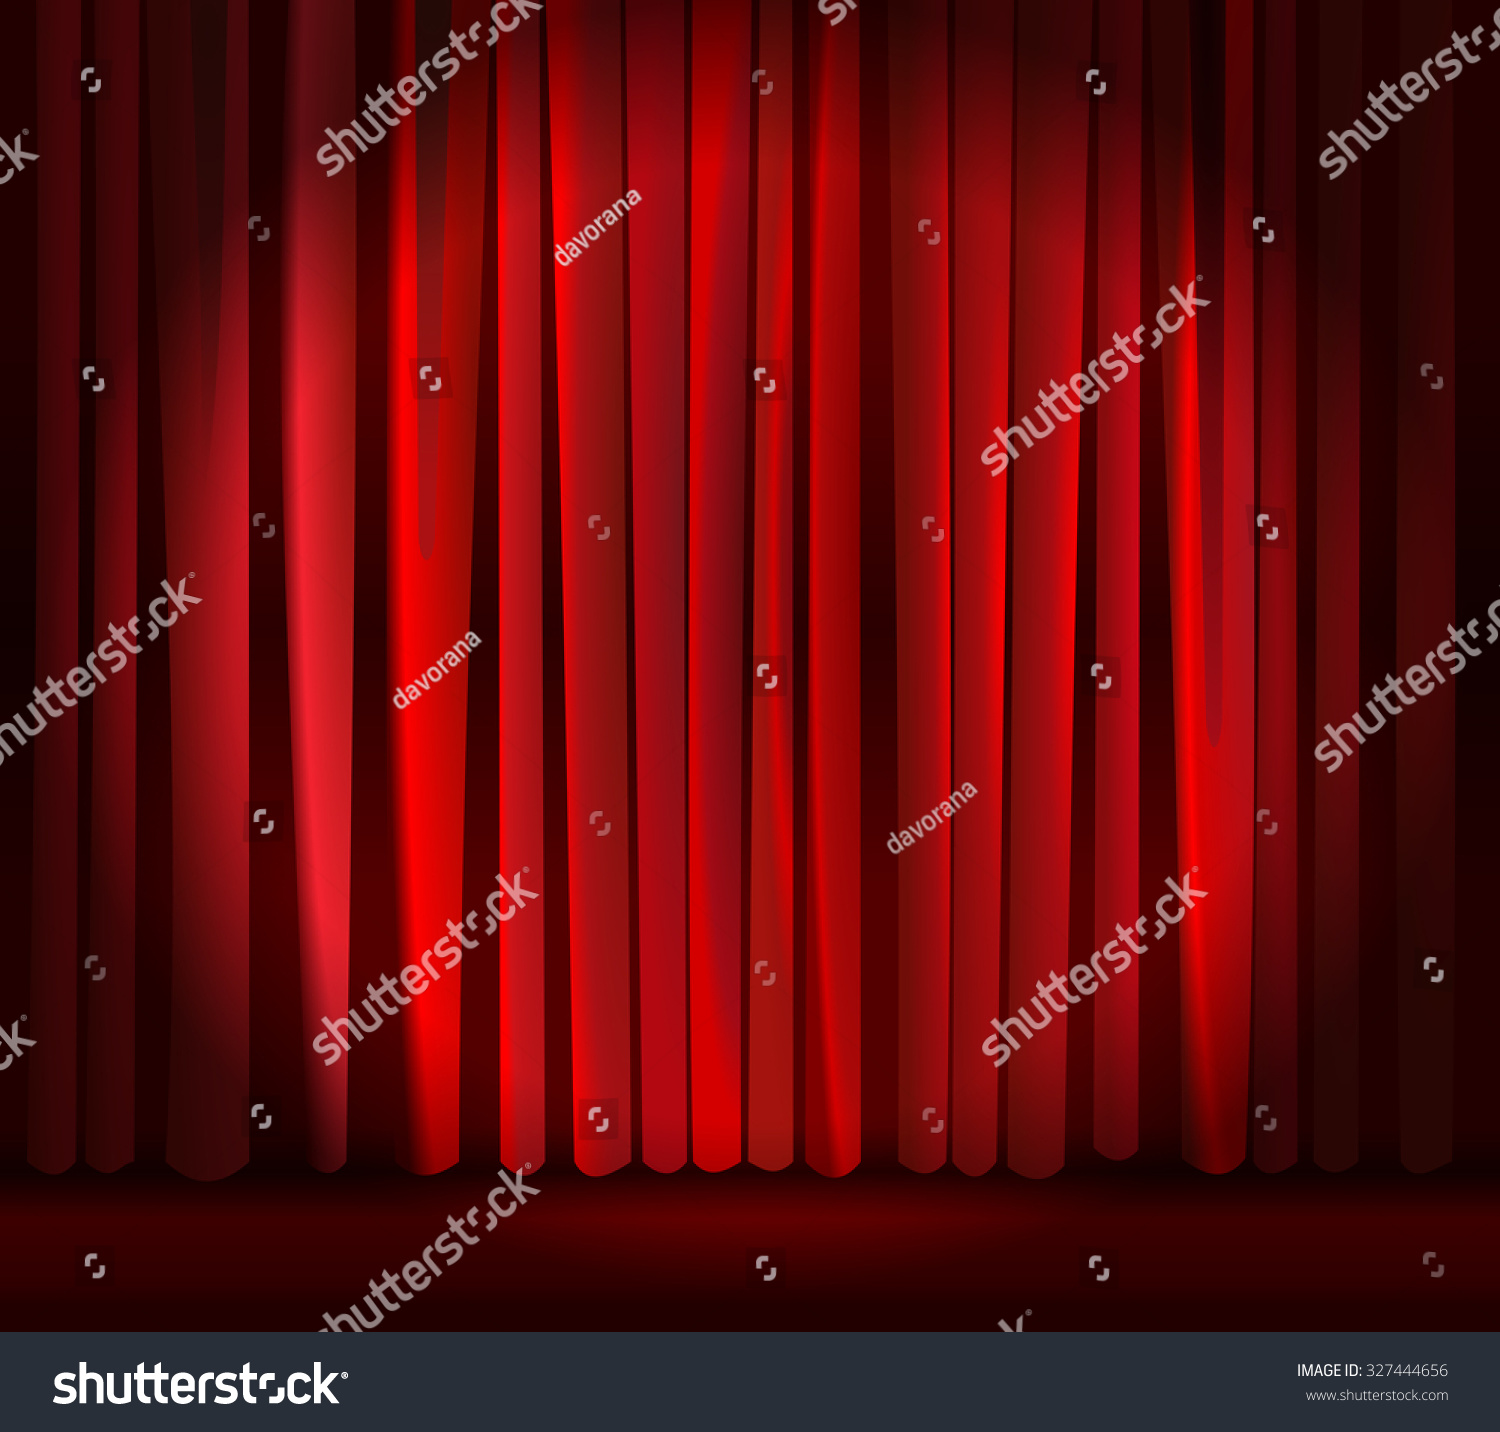 Stage curtains spotlight - Spotlight On Empty Stage Curtain Backdrop Red Closed Curtain With Light Spots In A Theater